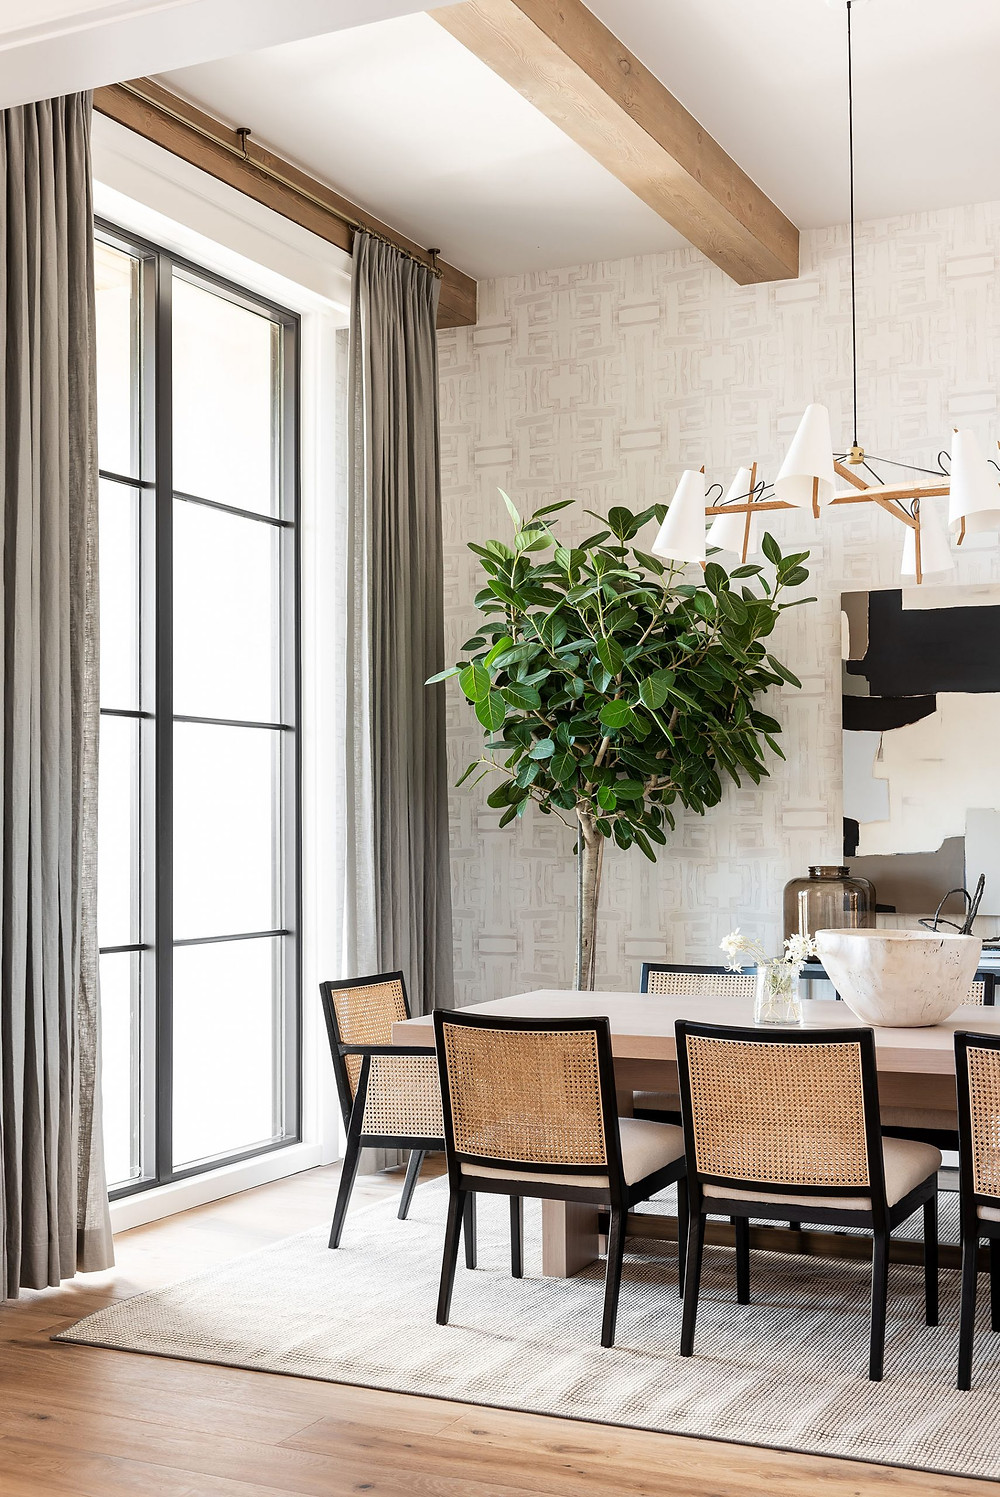 wood beam accented ceiling wallpaper soft grey drapery black framed windows dining table with black framed chair on beige area rug hardwood floors floor plant